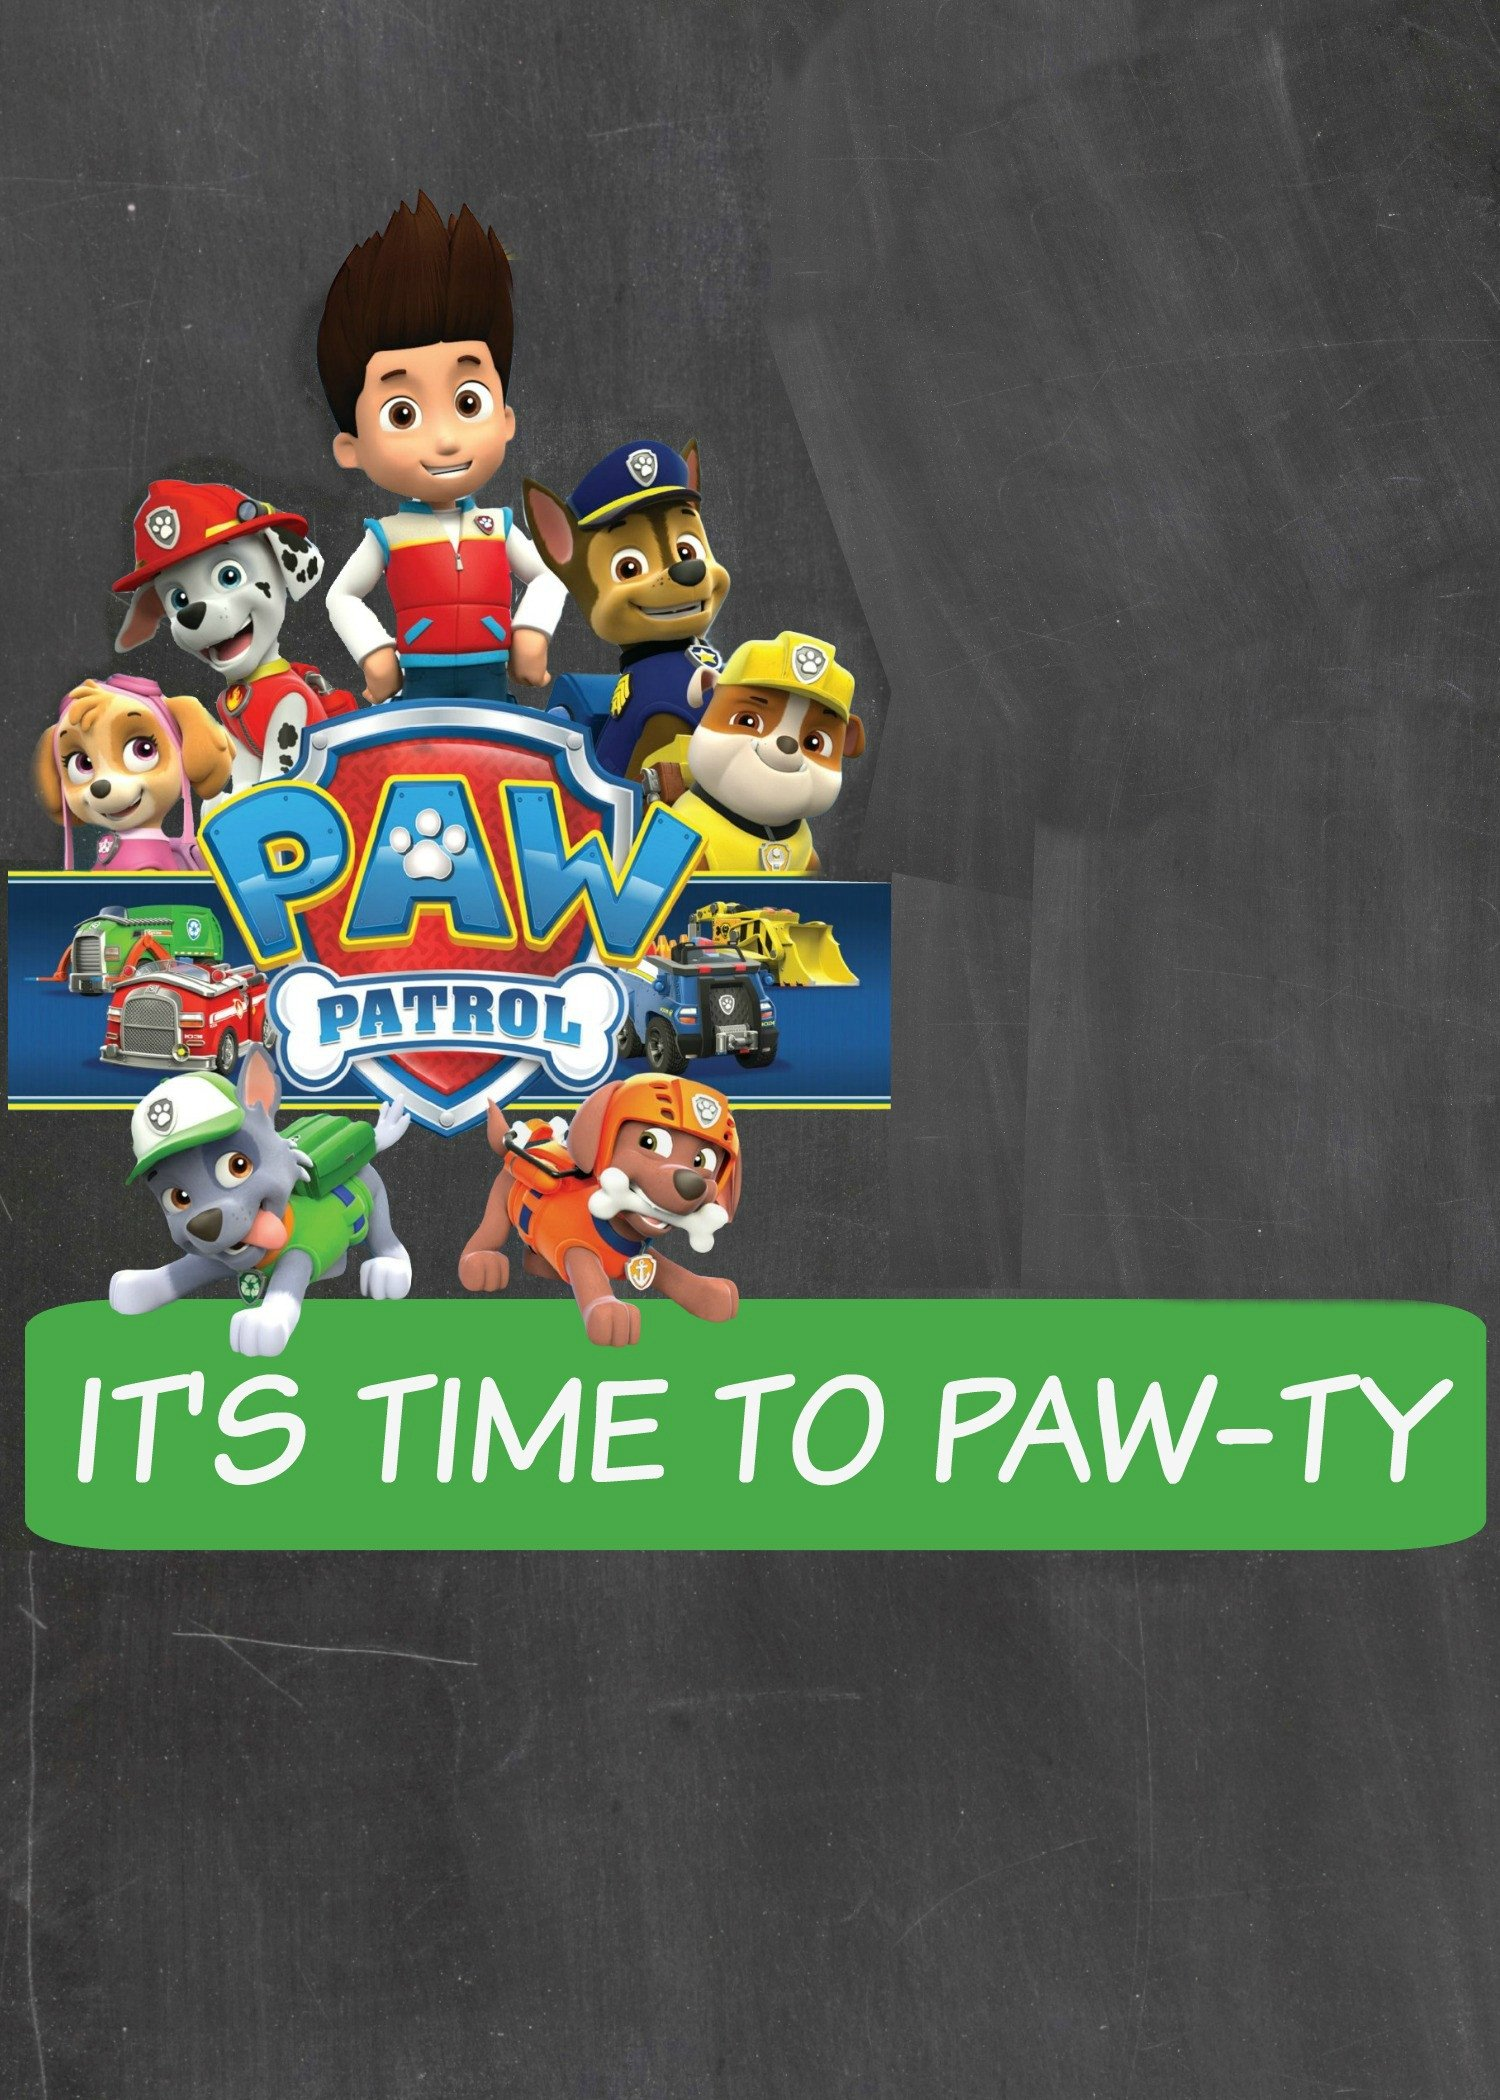 Free Paw Patrol Invitation Template How to Make A Paw Patrol Digital Invitation